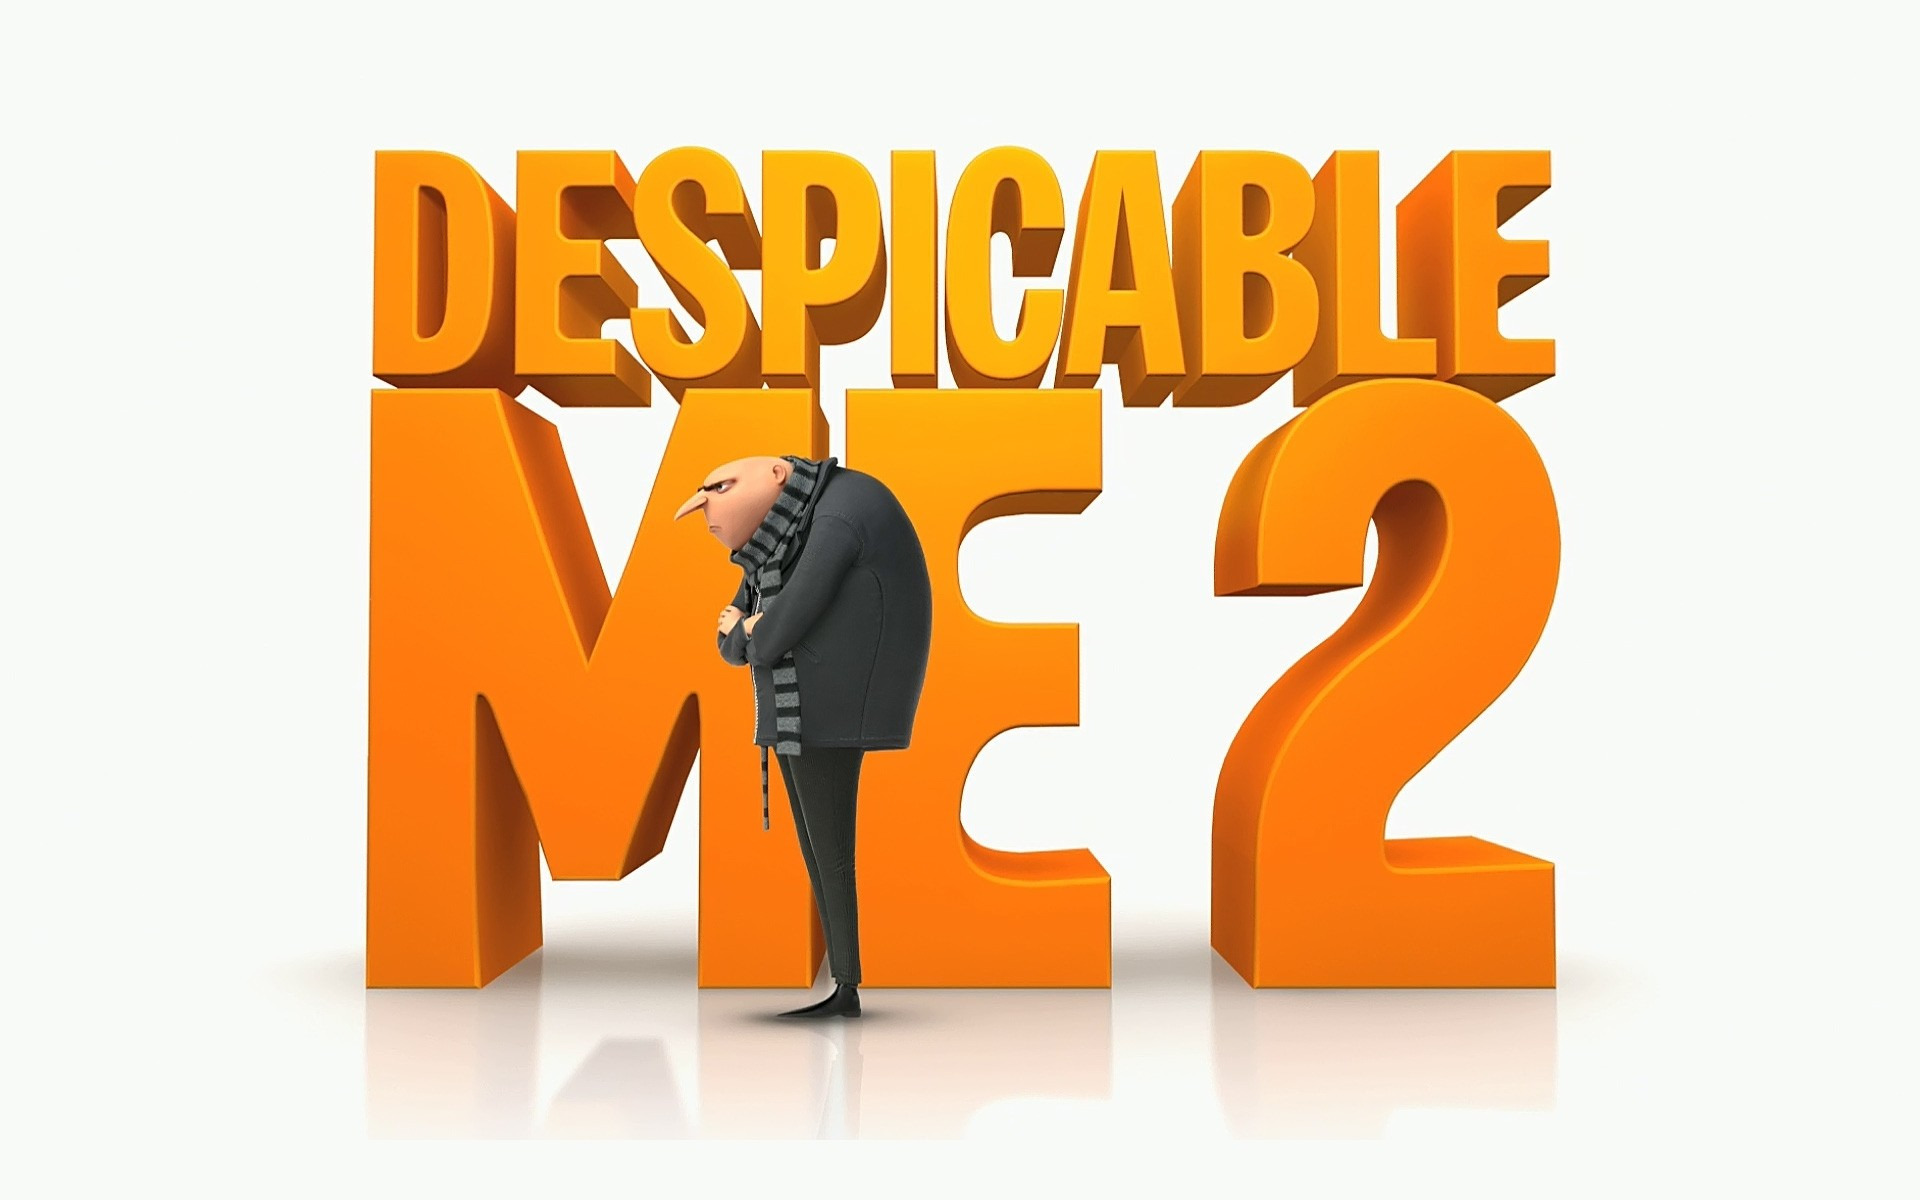 Despicable Me 2 Android Wallpapers For Free